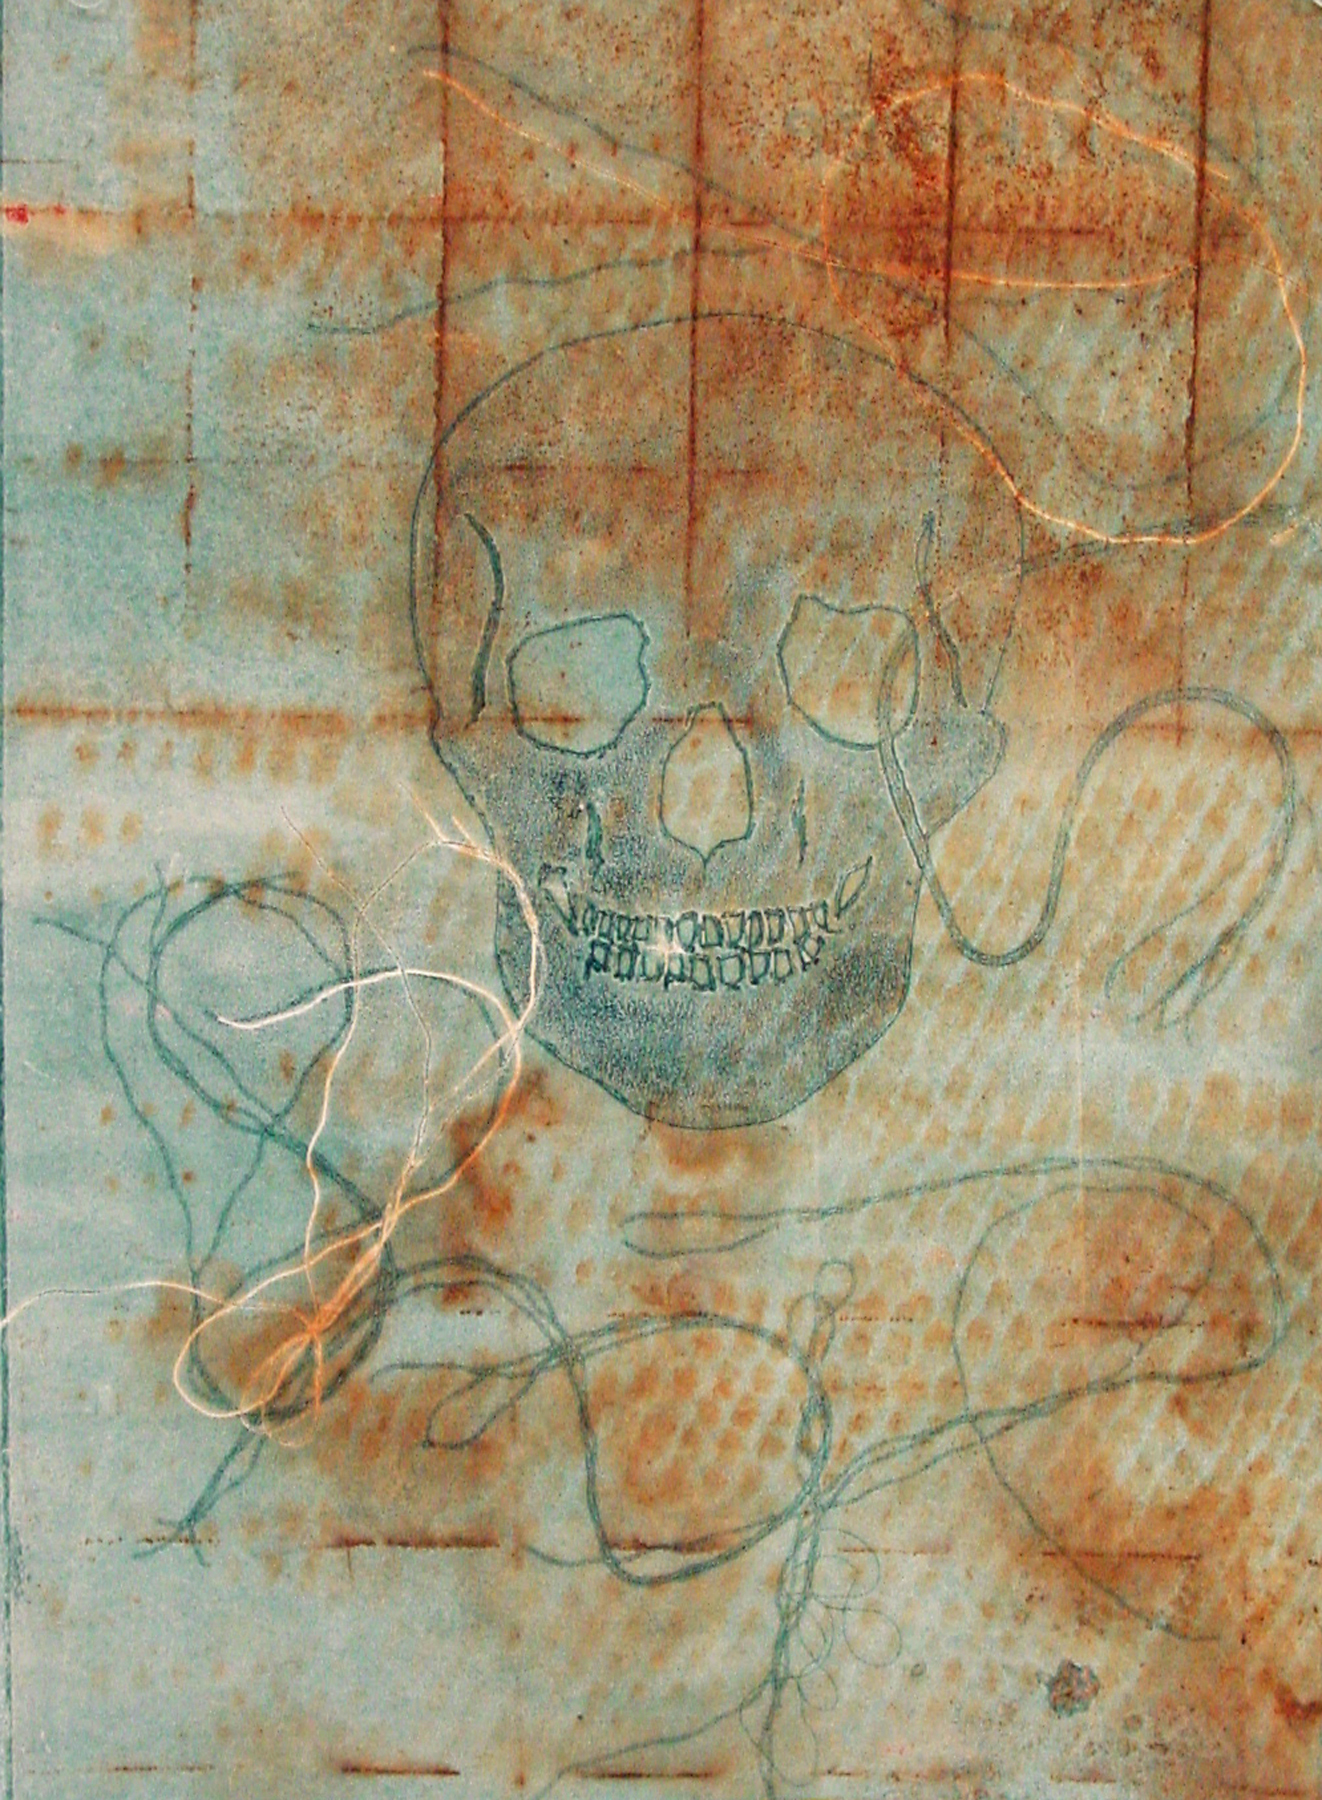 Junanne Peck, Scull with Rust monotype